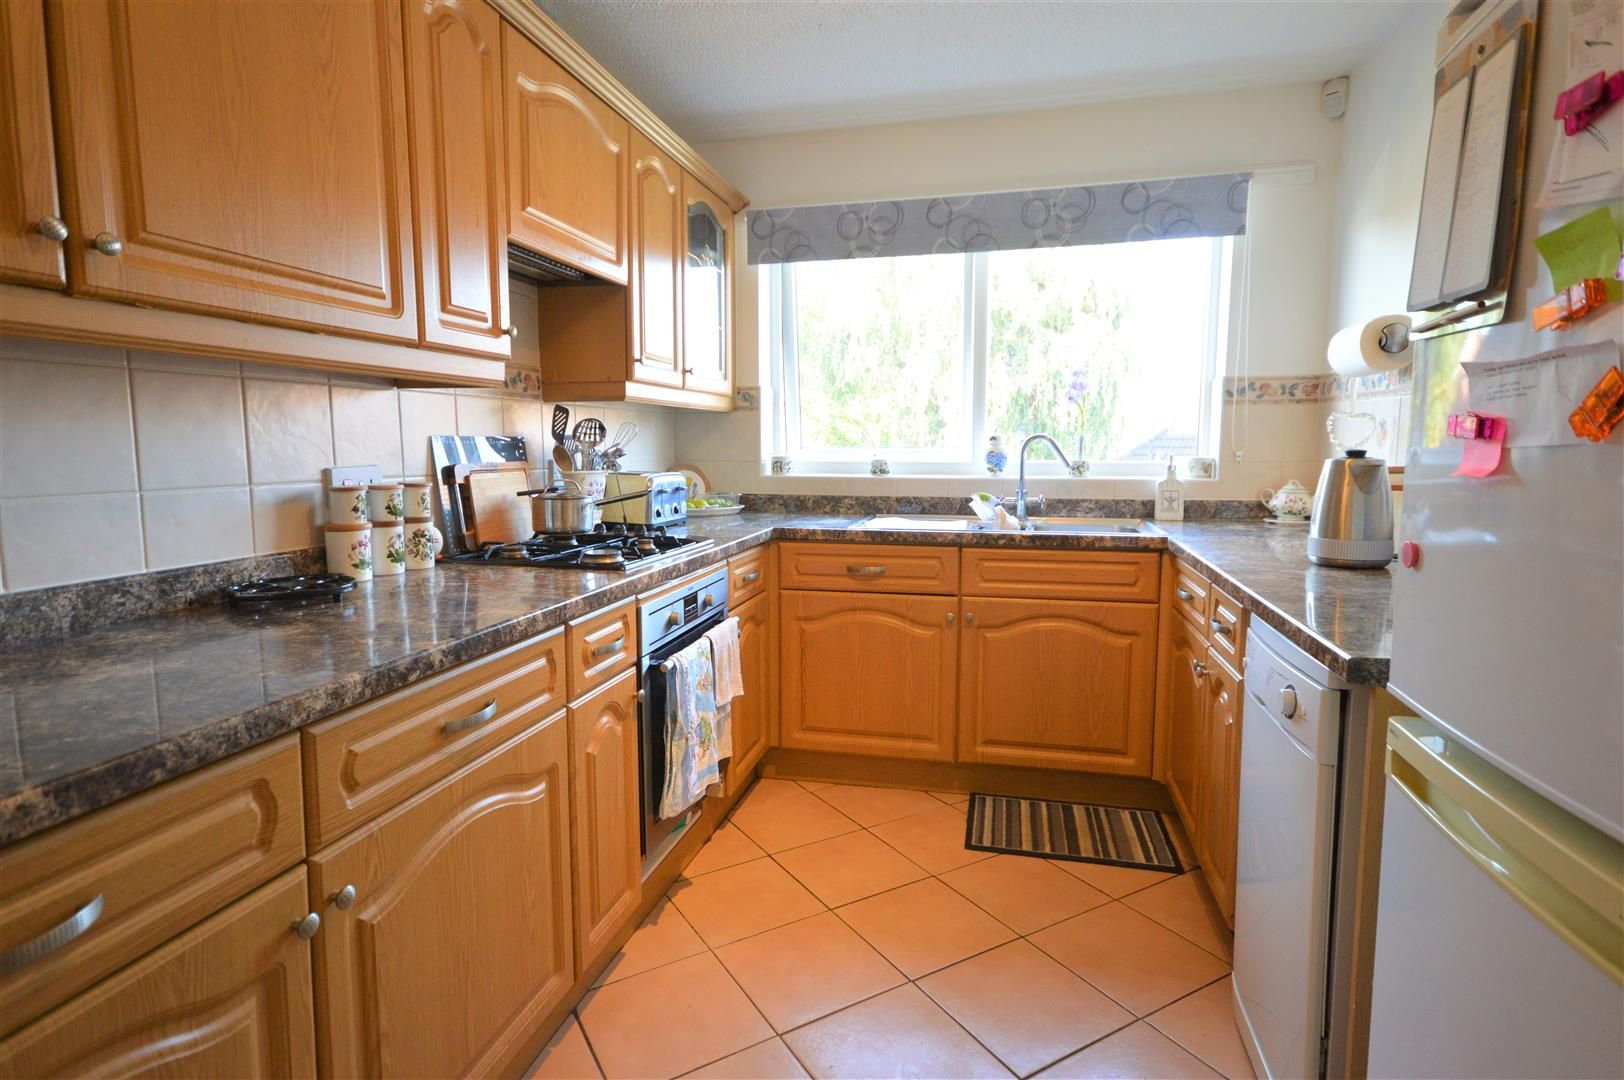 4 bed detached for sale in Leominster 4